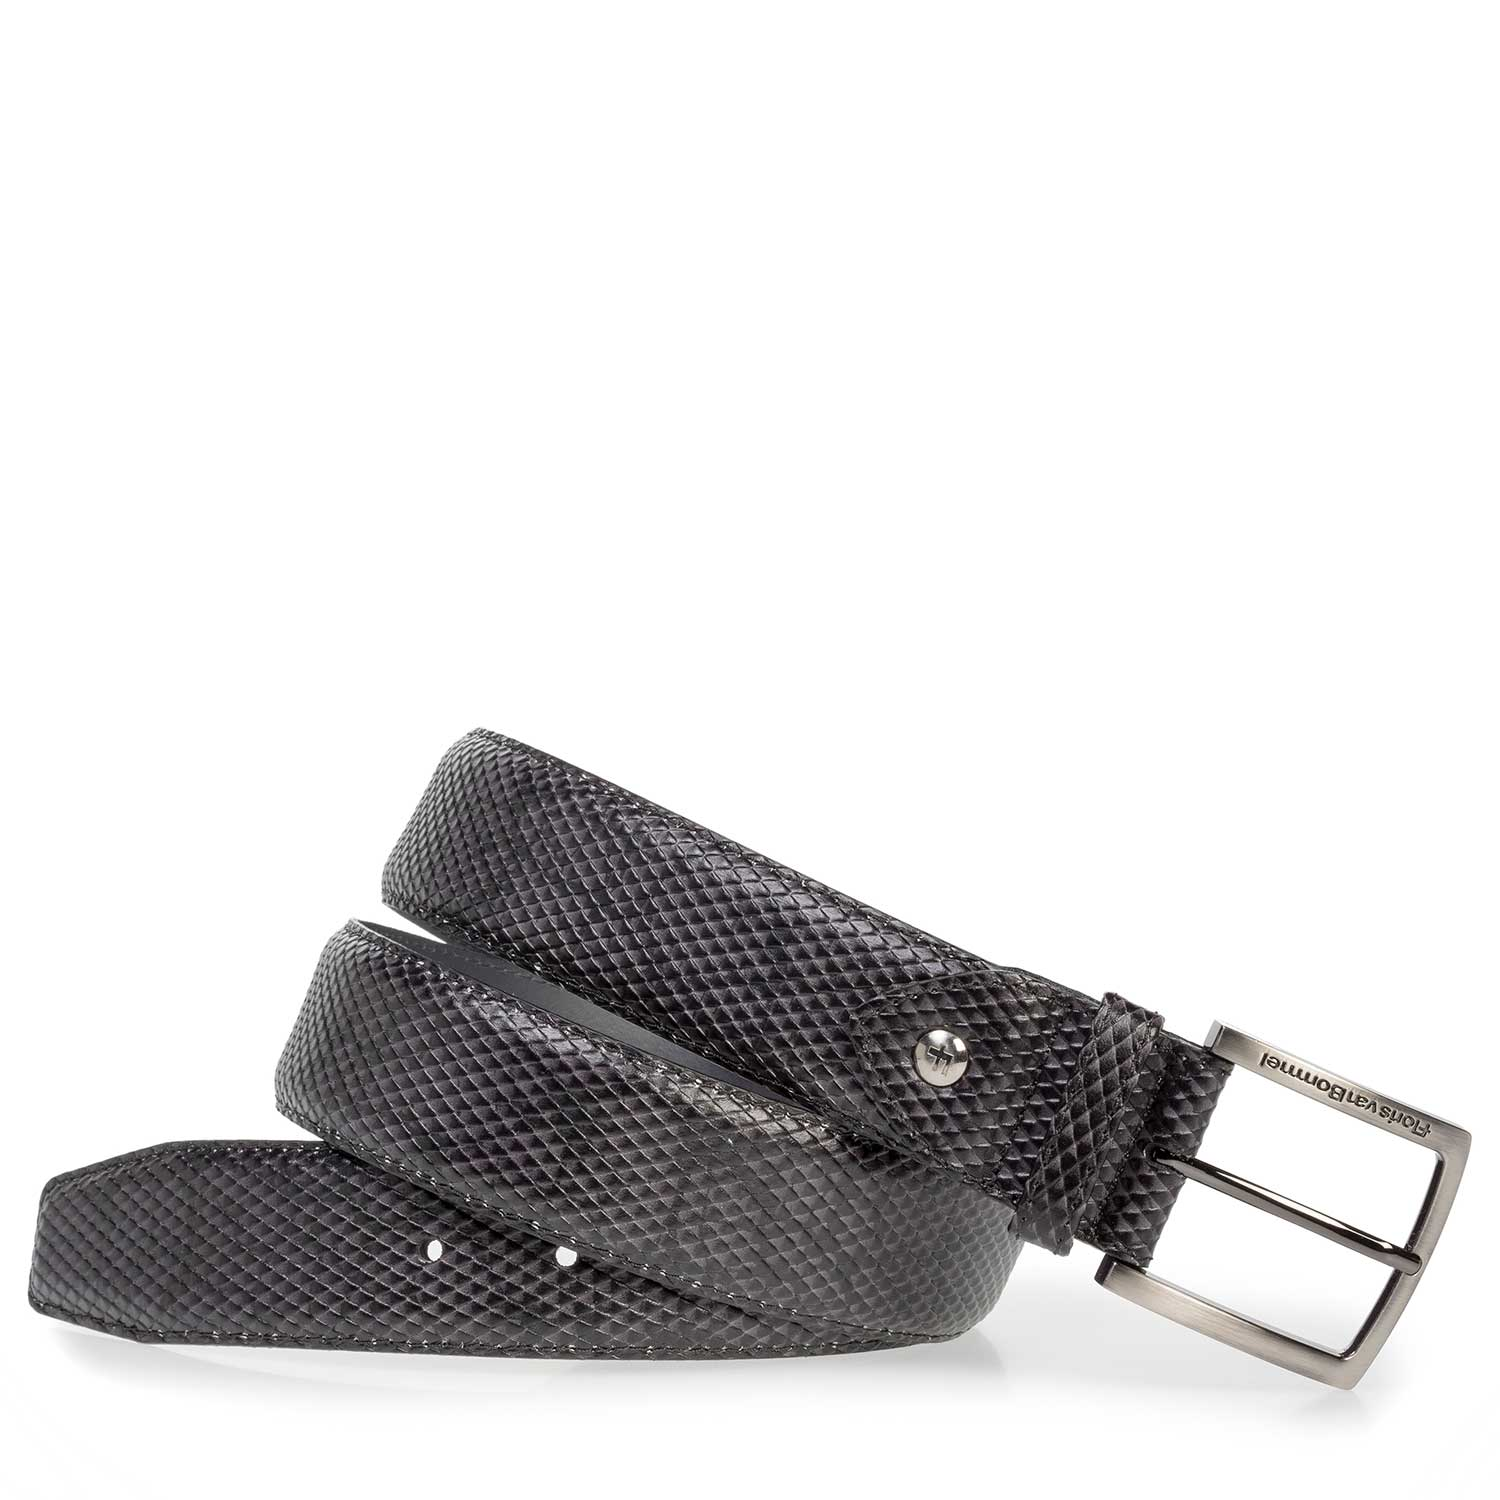 75202/35 - Dark grey leather belt